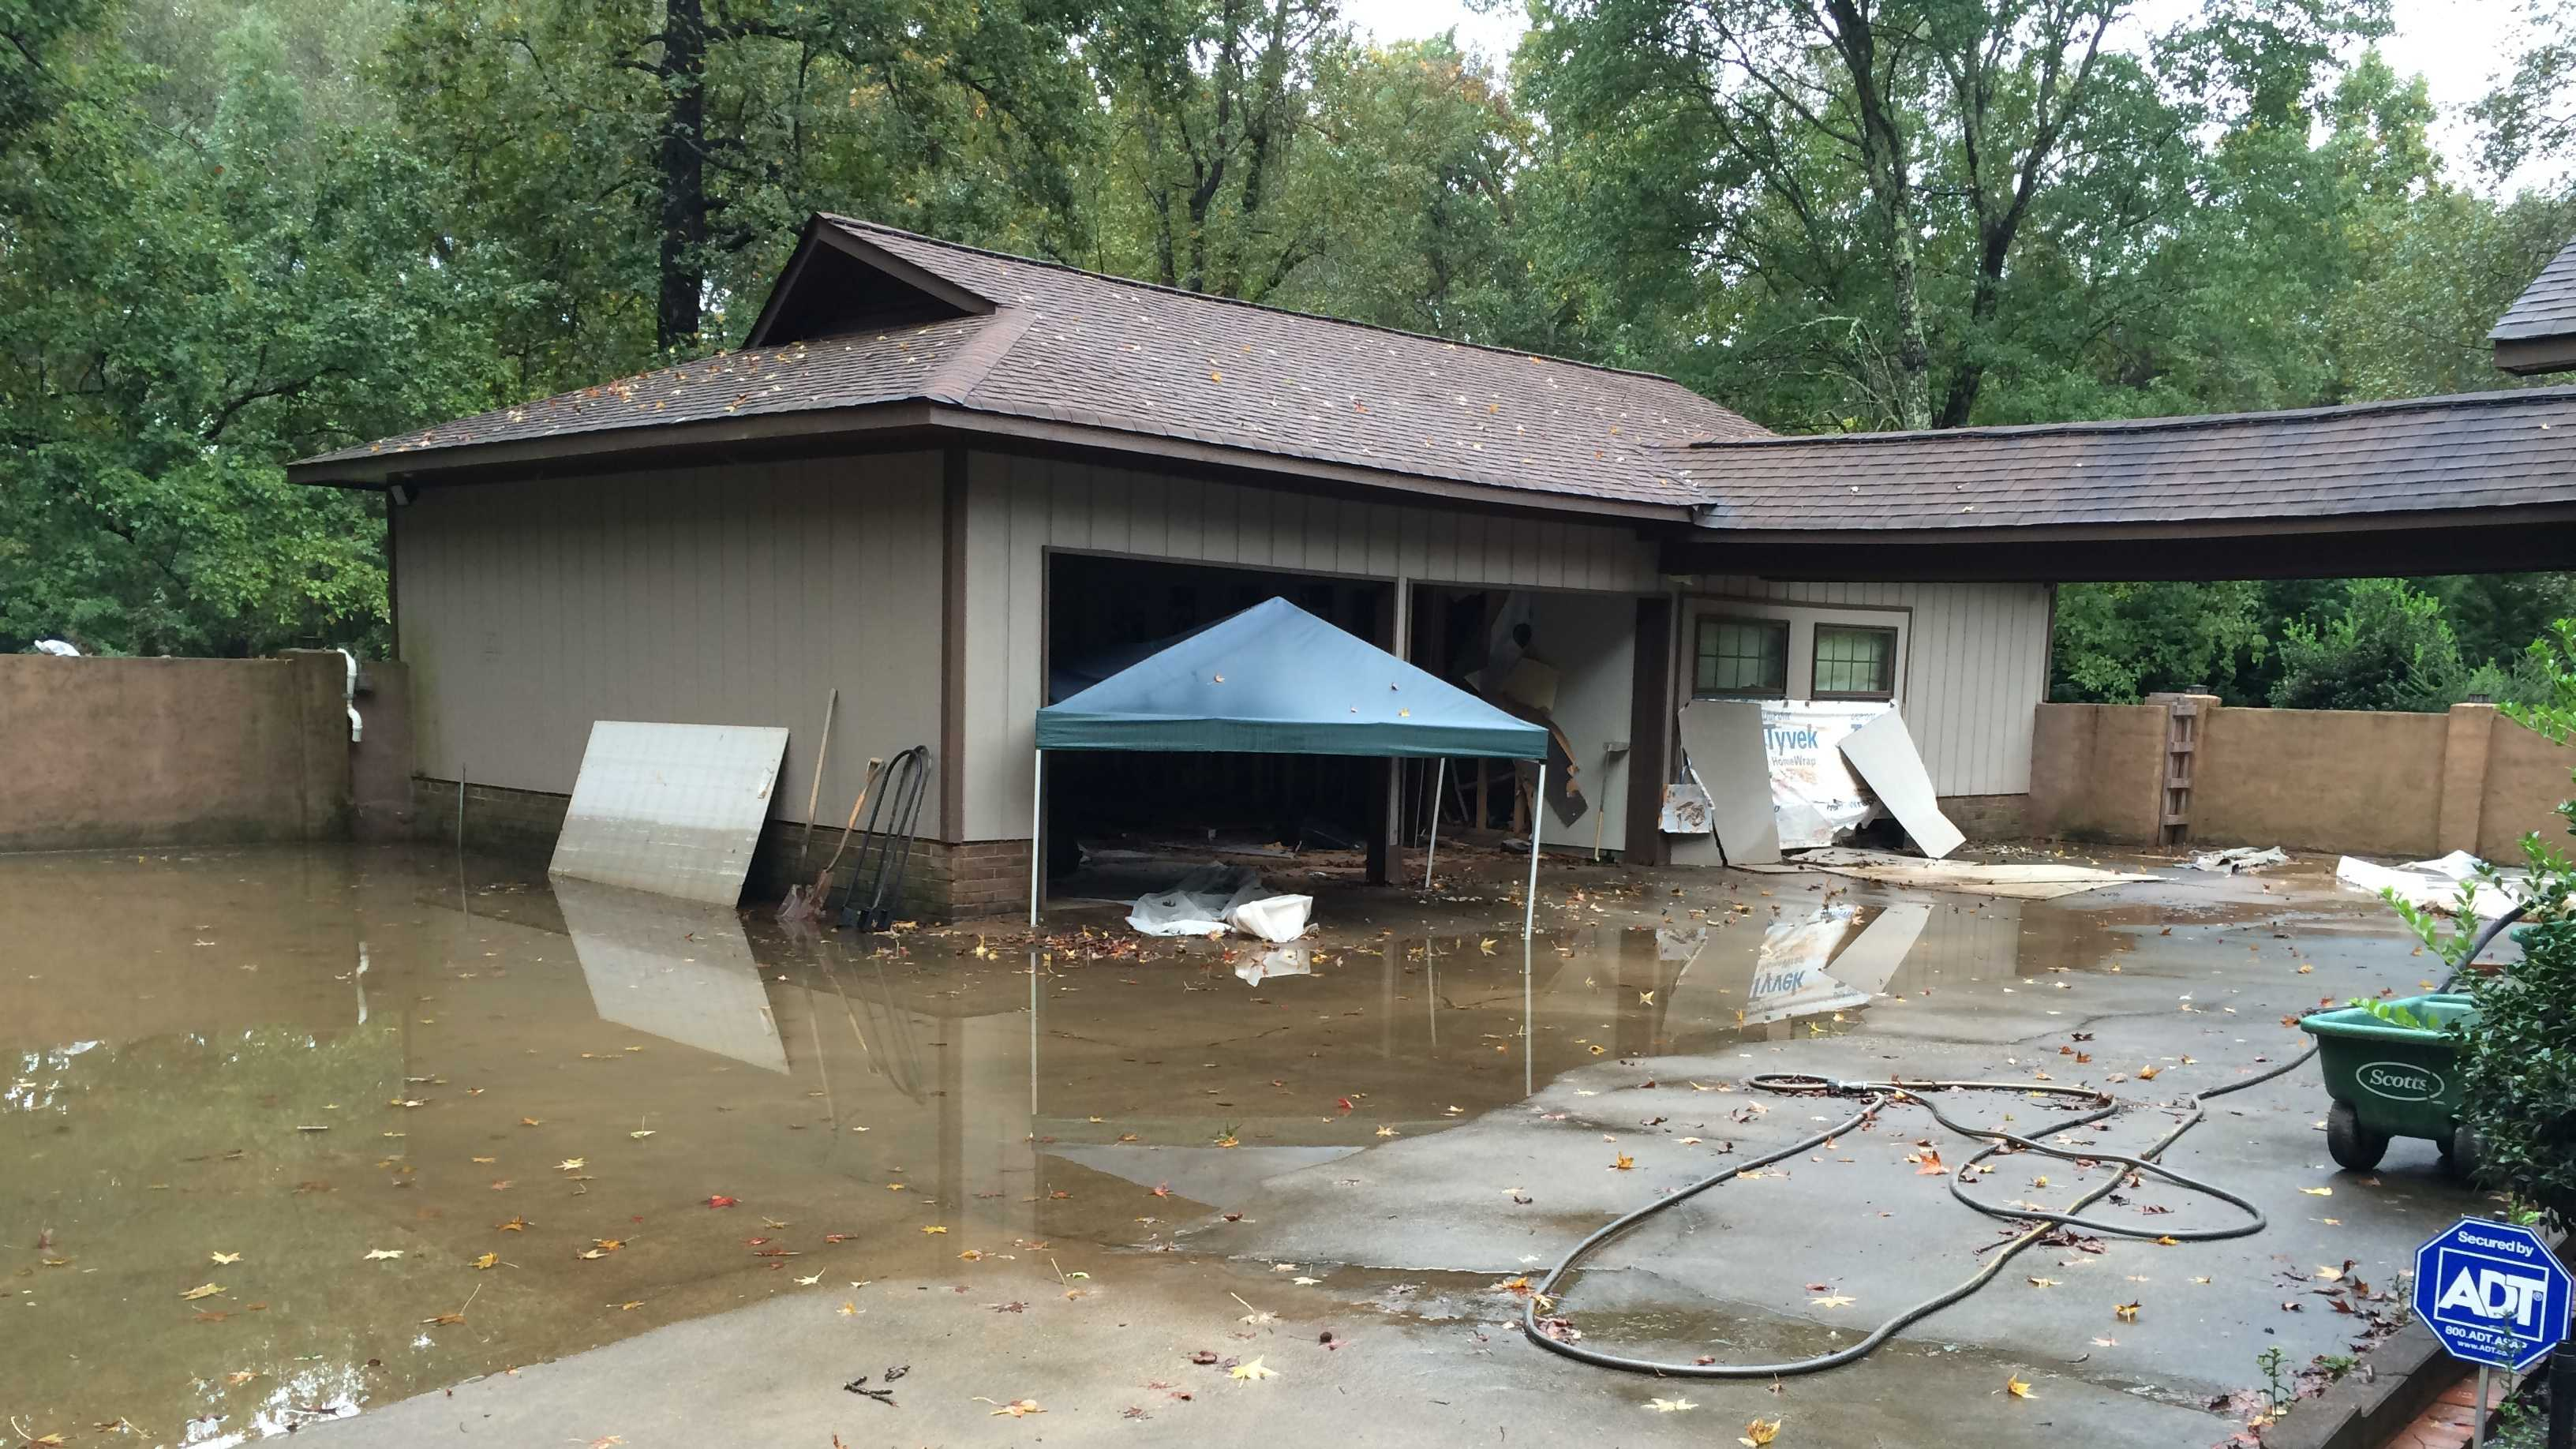 The Cantrells had a flood wall that held, but the water pressure built up, bursting through the garage and hitting their house.